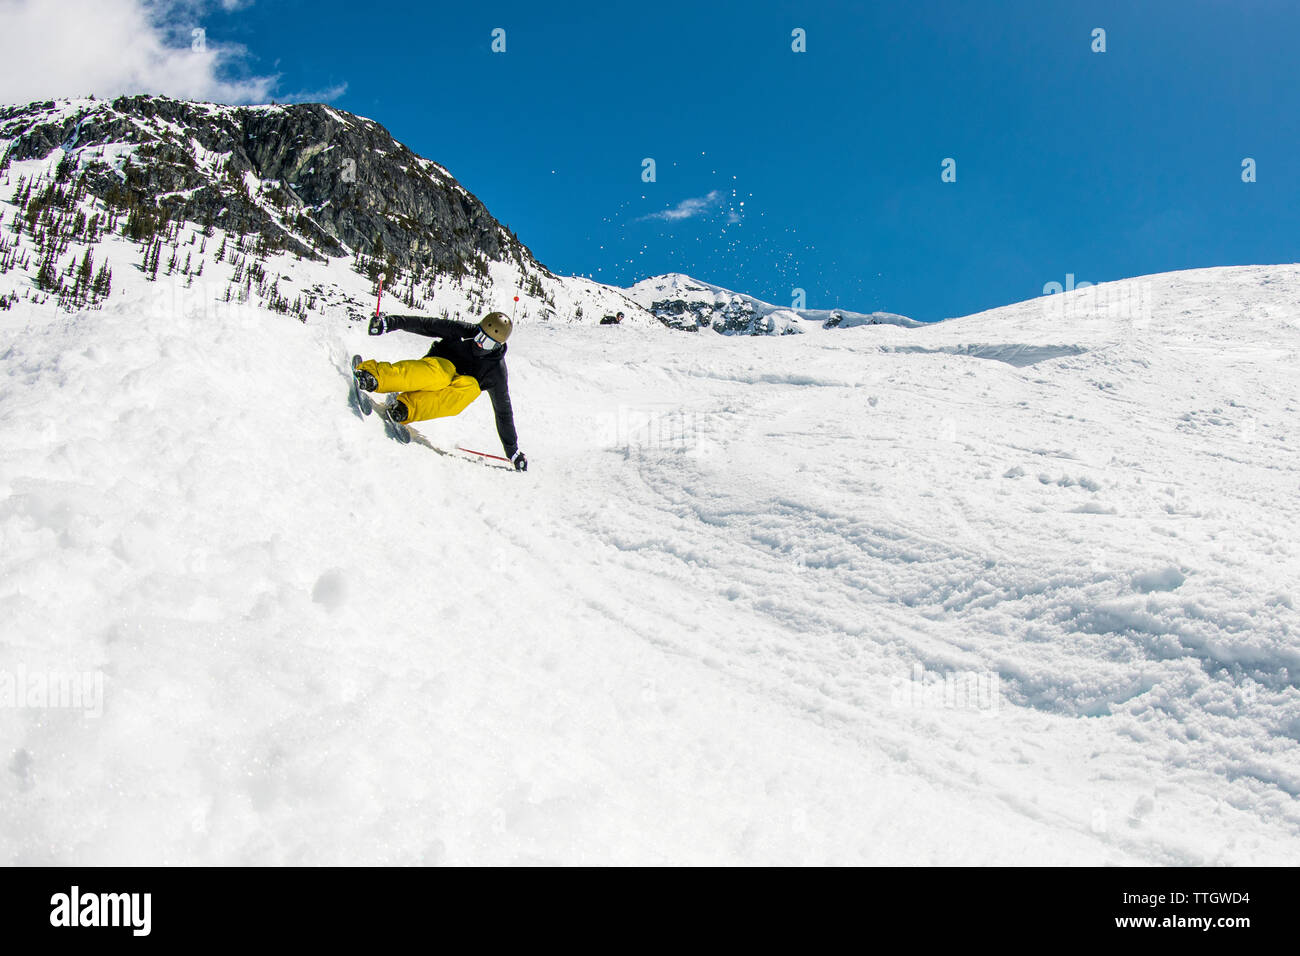 A man skis a banked course in the terrain park at Whistler Blackcomb. Stock Photo